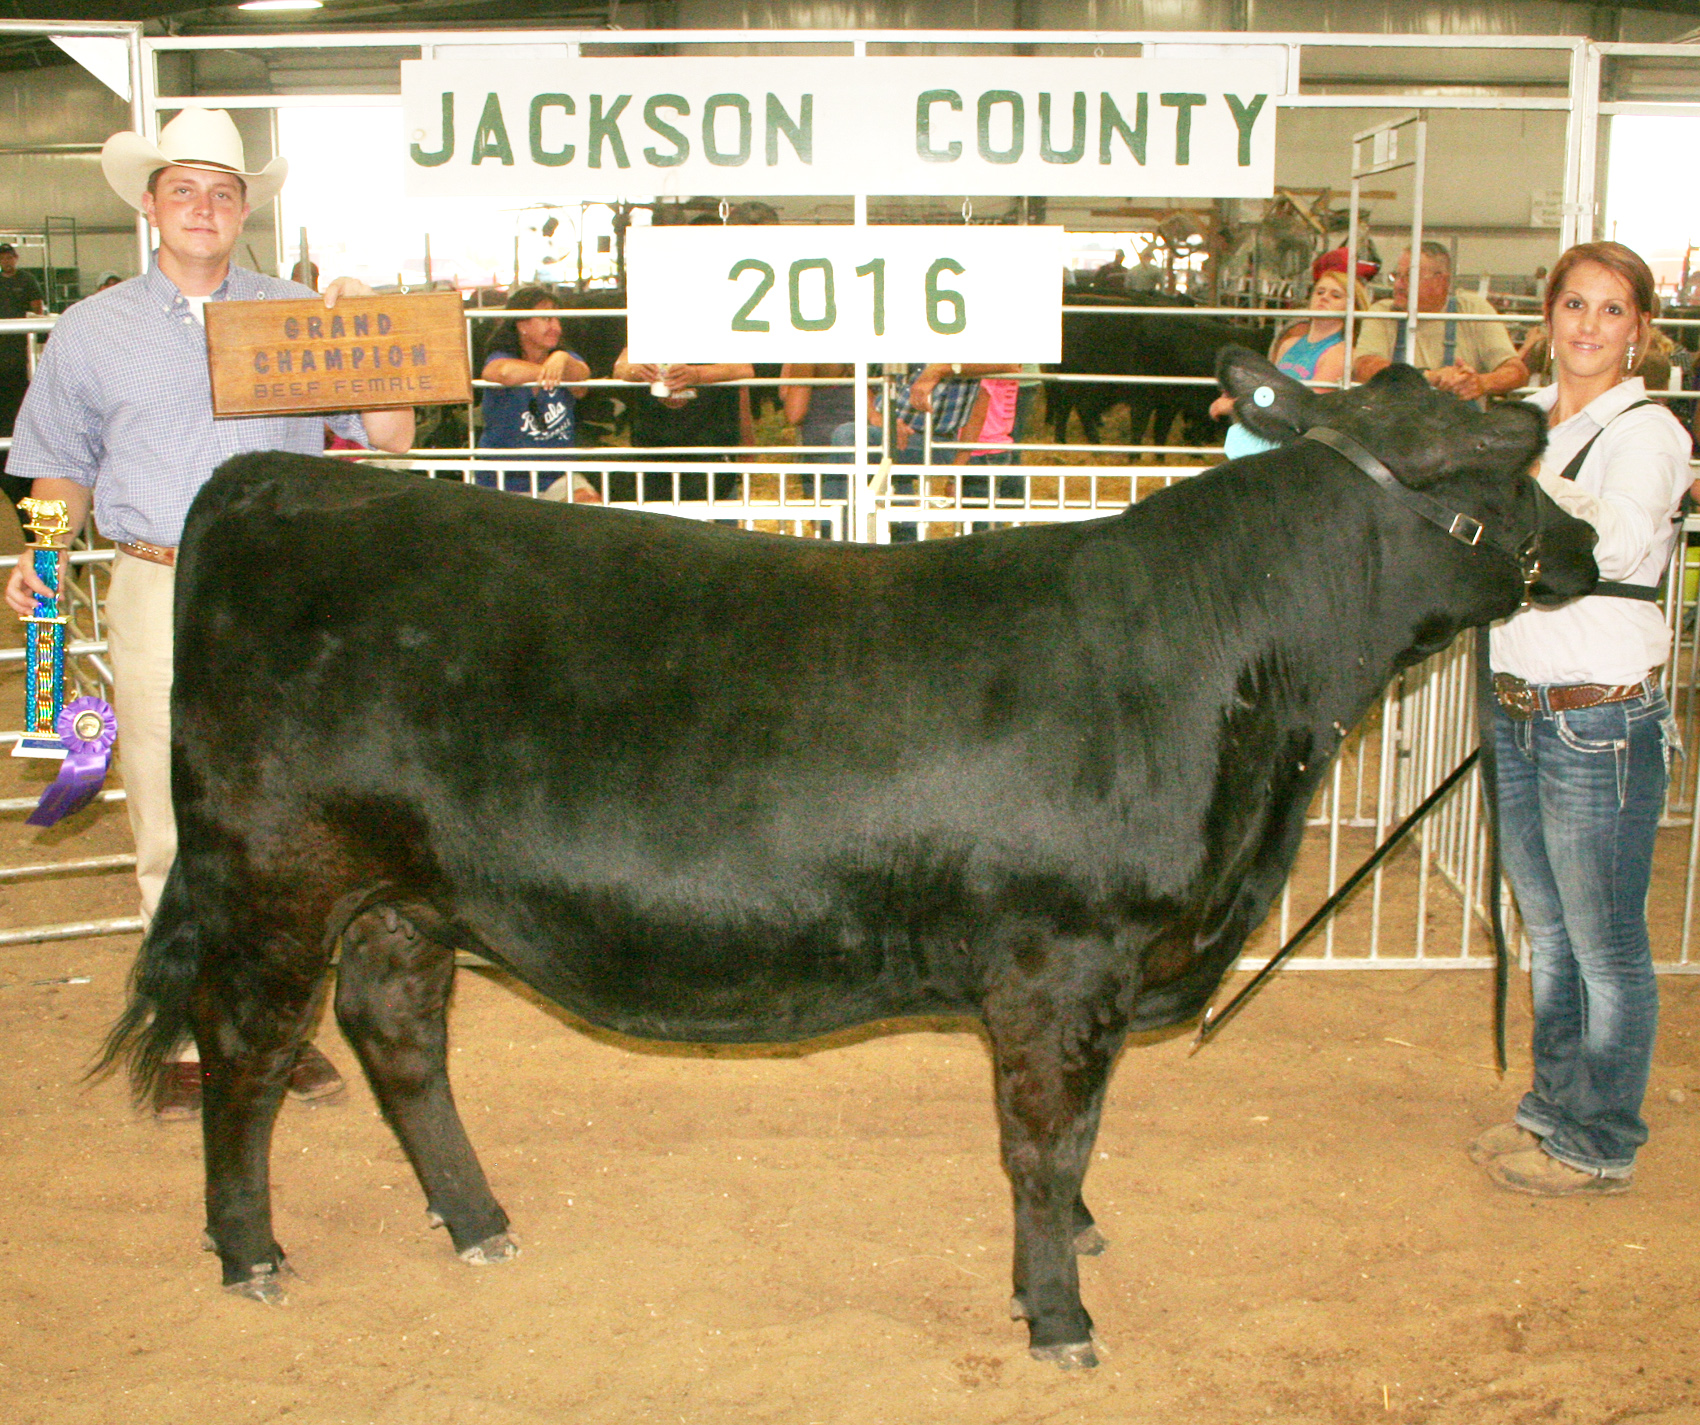 The grand champion heifer in the beef show was this Angus yearling shown by Brianna Cattrell (right) of the Soldier Boosters. Assisting Brianna is horse show judge Brady Jenson. (Photo by Brian Sanders)